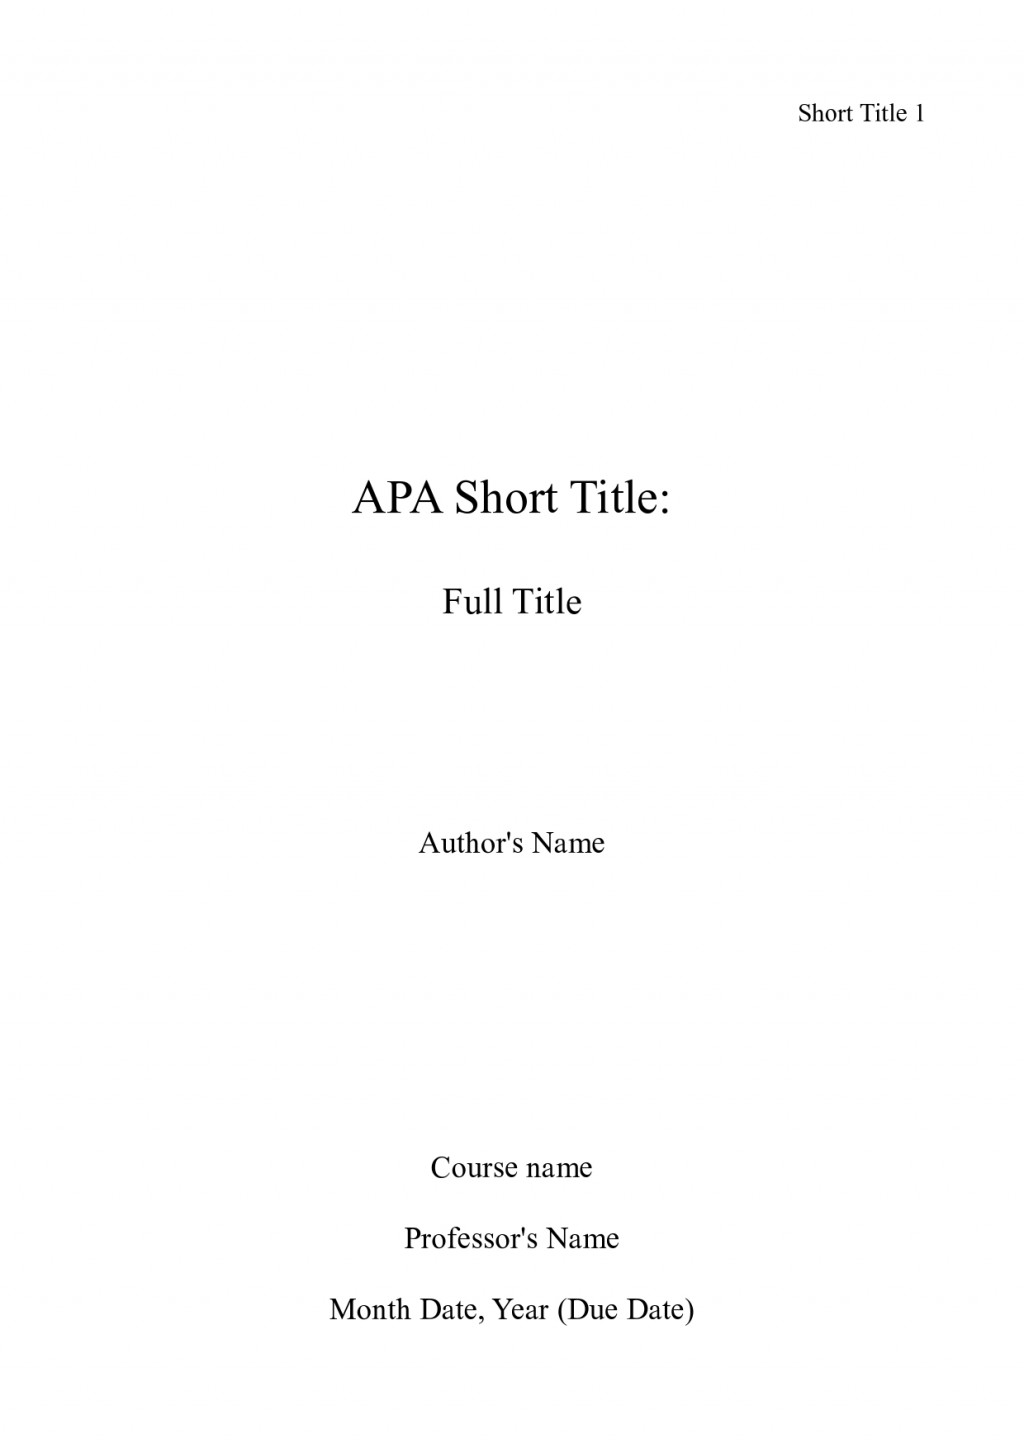 001 Apa Title Page Sample Essay Example Cover Sheet Shocking For Word An Format Mla Large